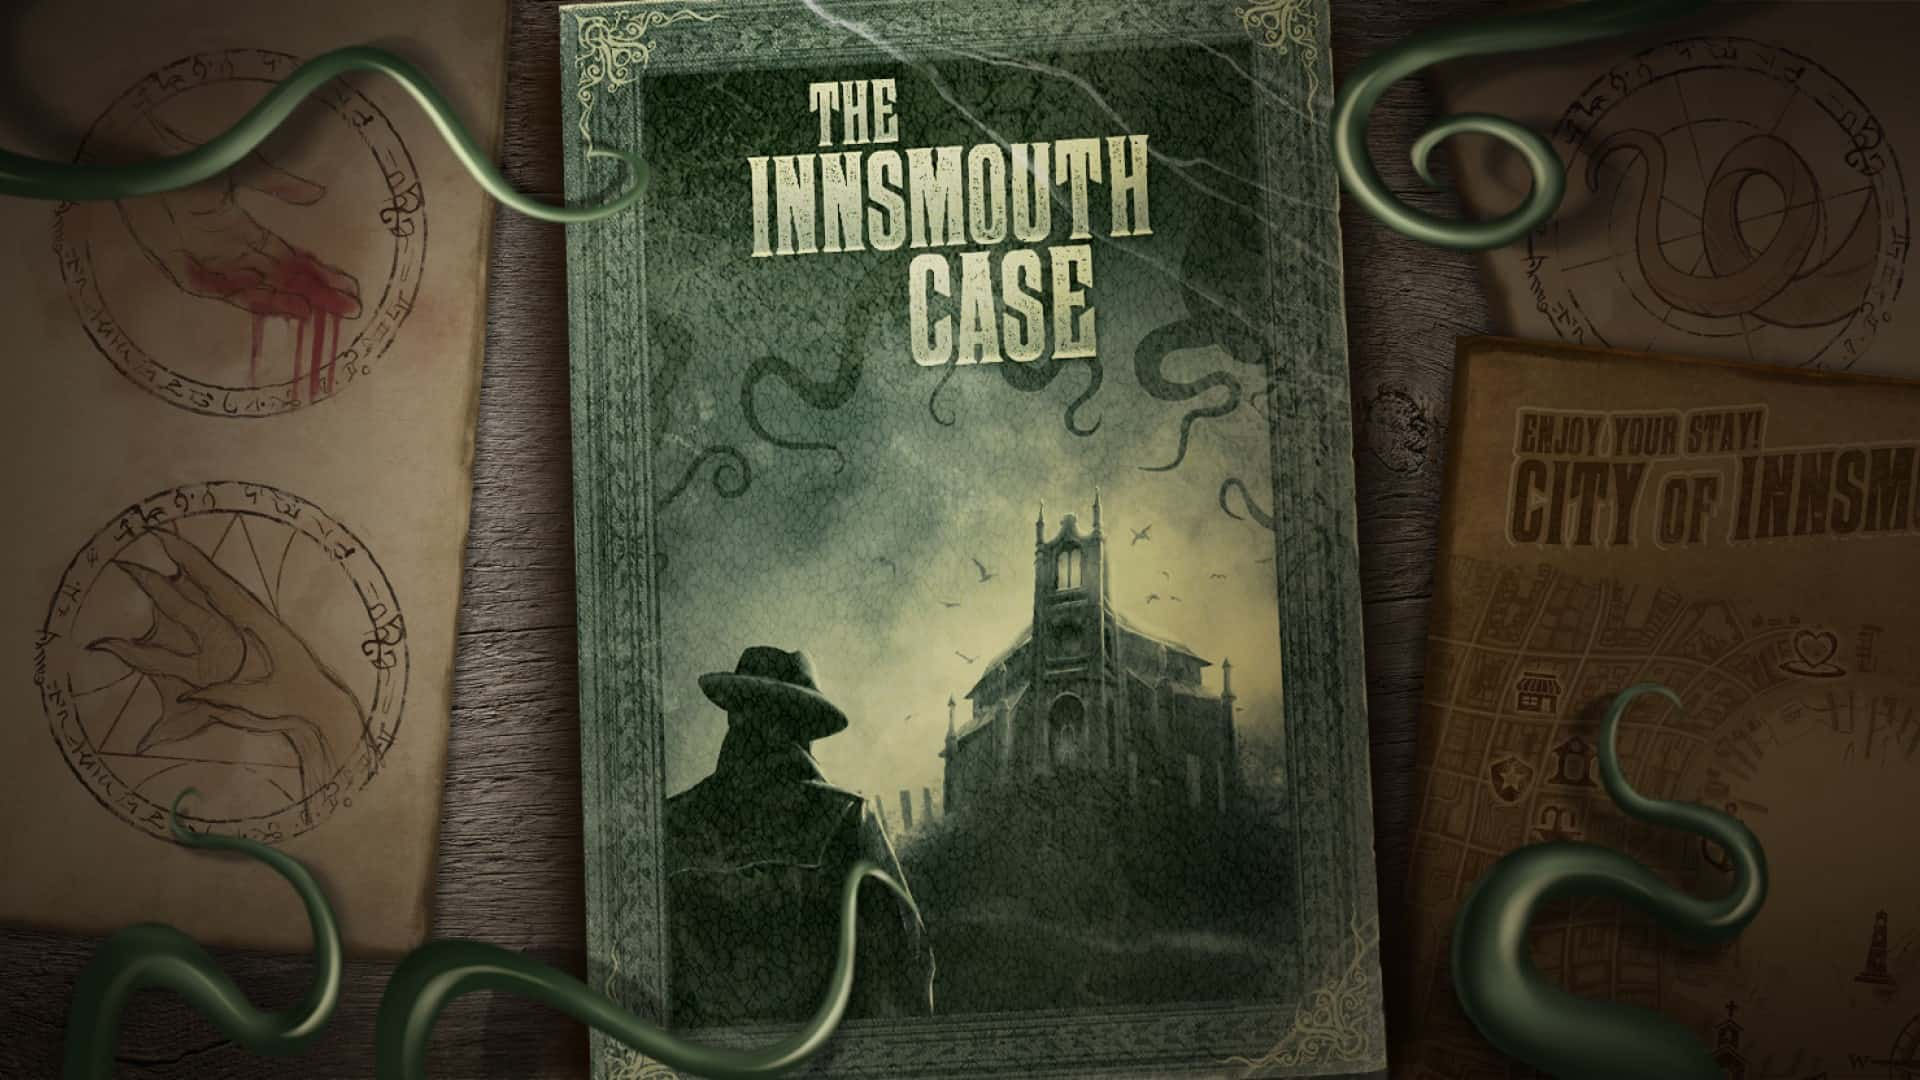 The Innsmouth Case - THE INNSMOUTH CASE BRINGS SPOOPY LOVECRAFTIAN HORROR TO YOU PHONE